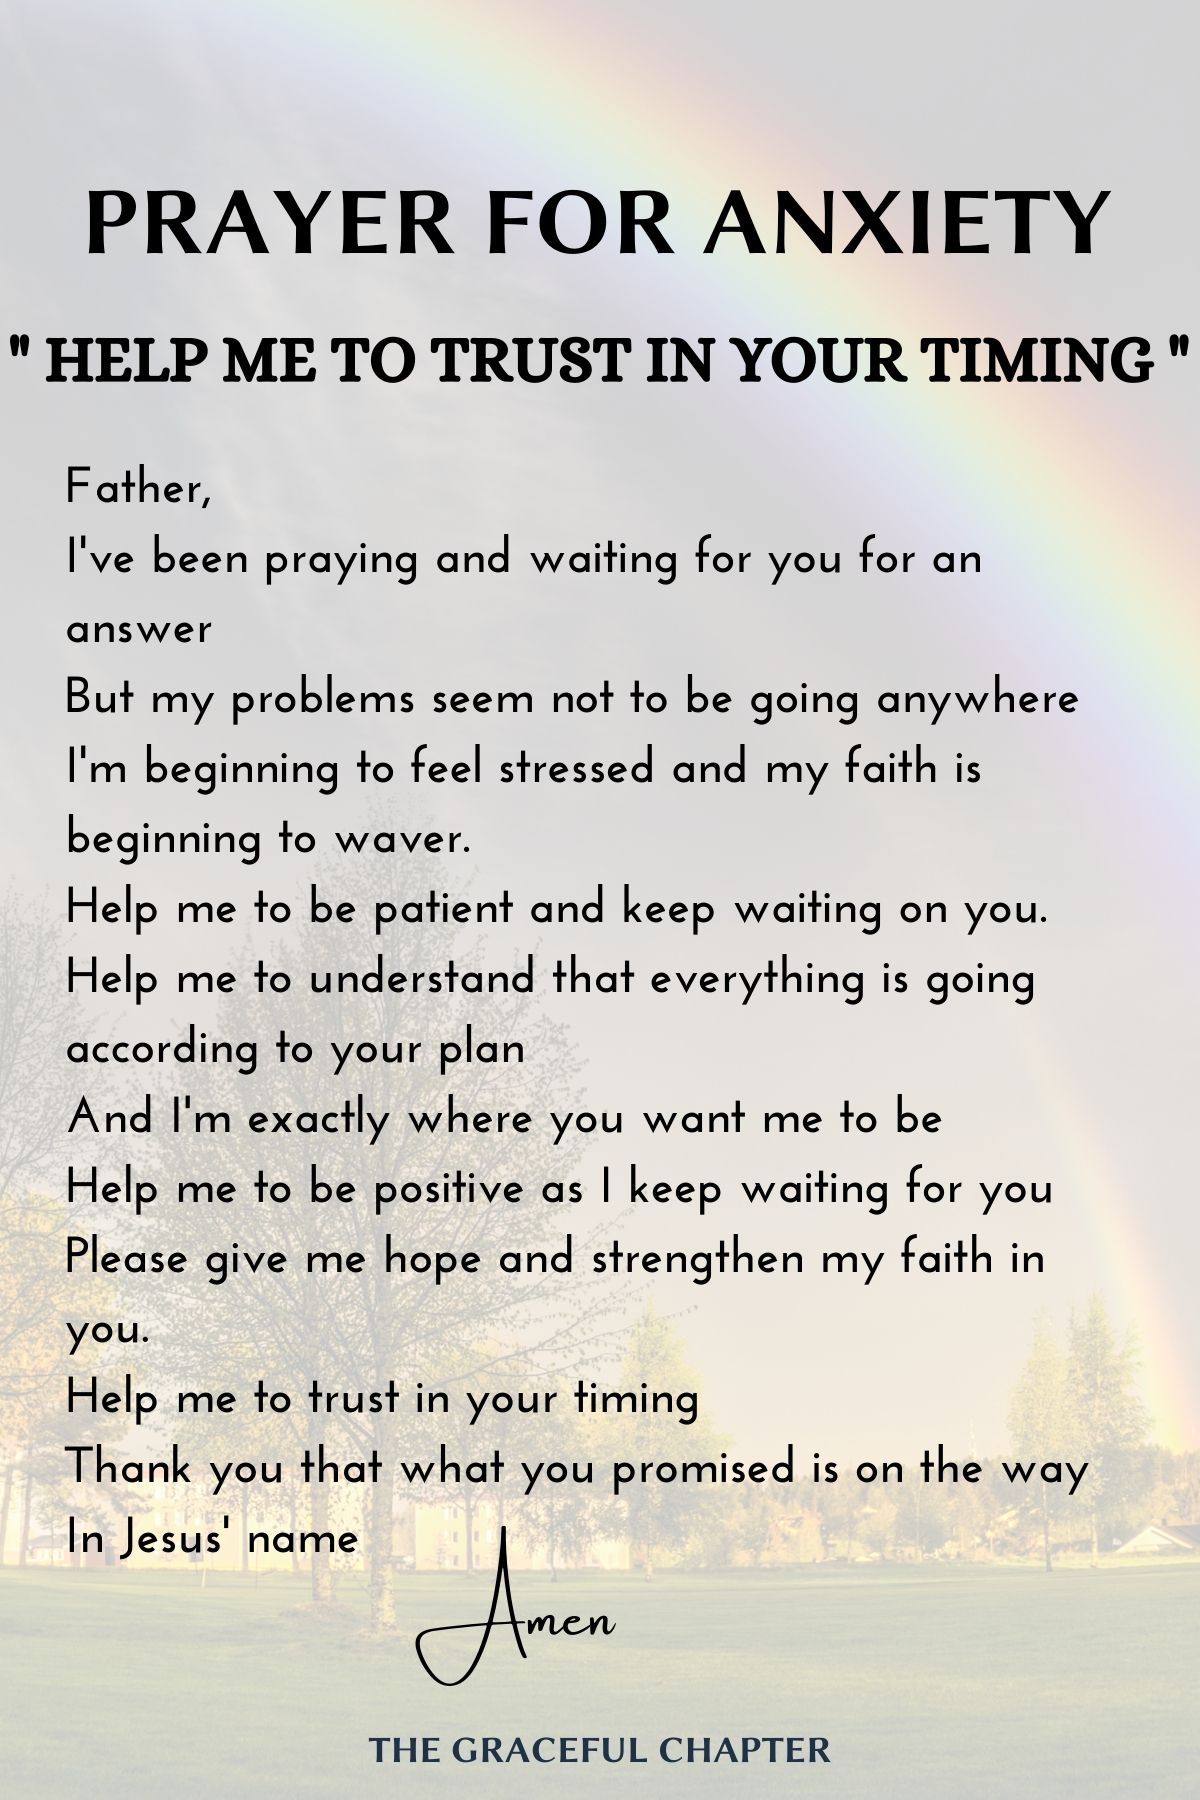 Prayer for anxiety - Help me to trust your timing